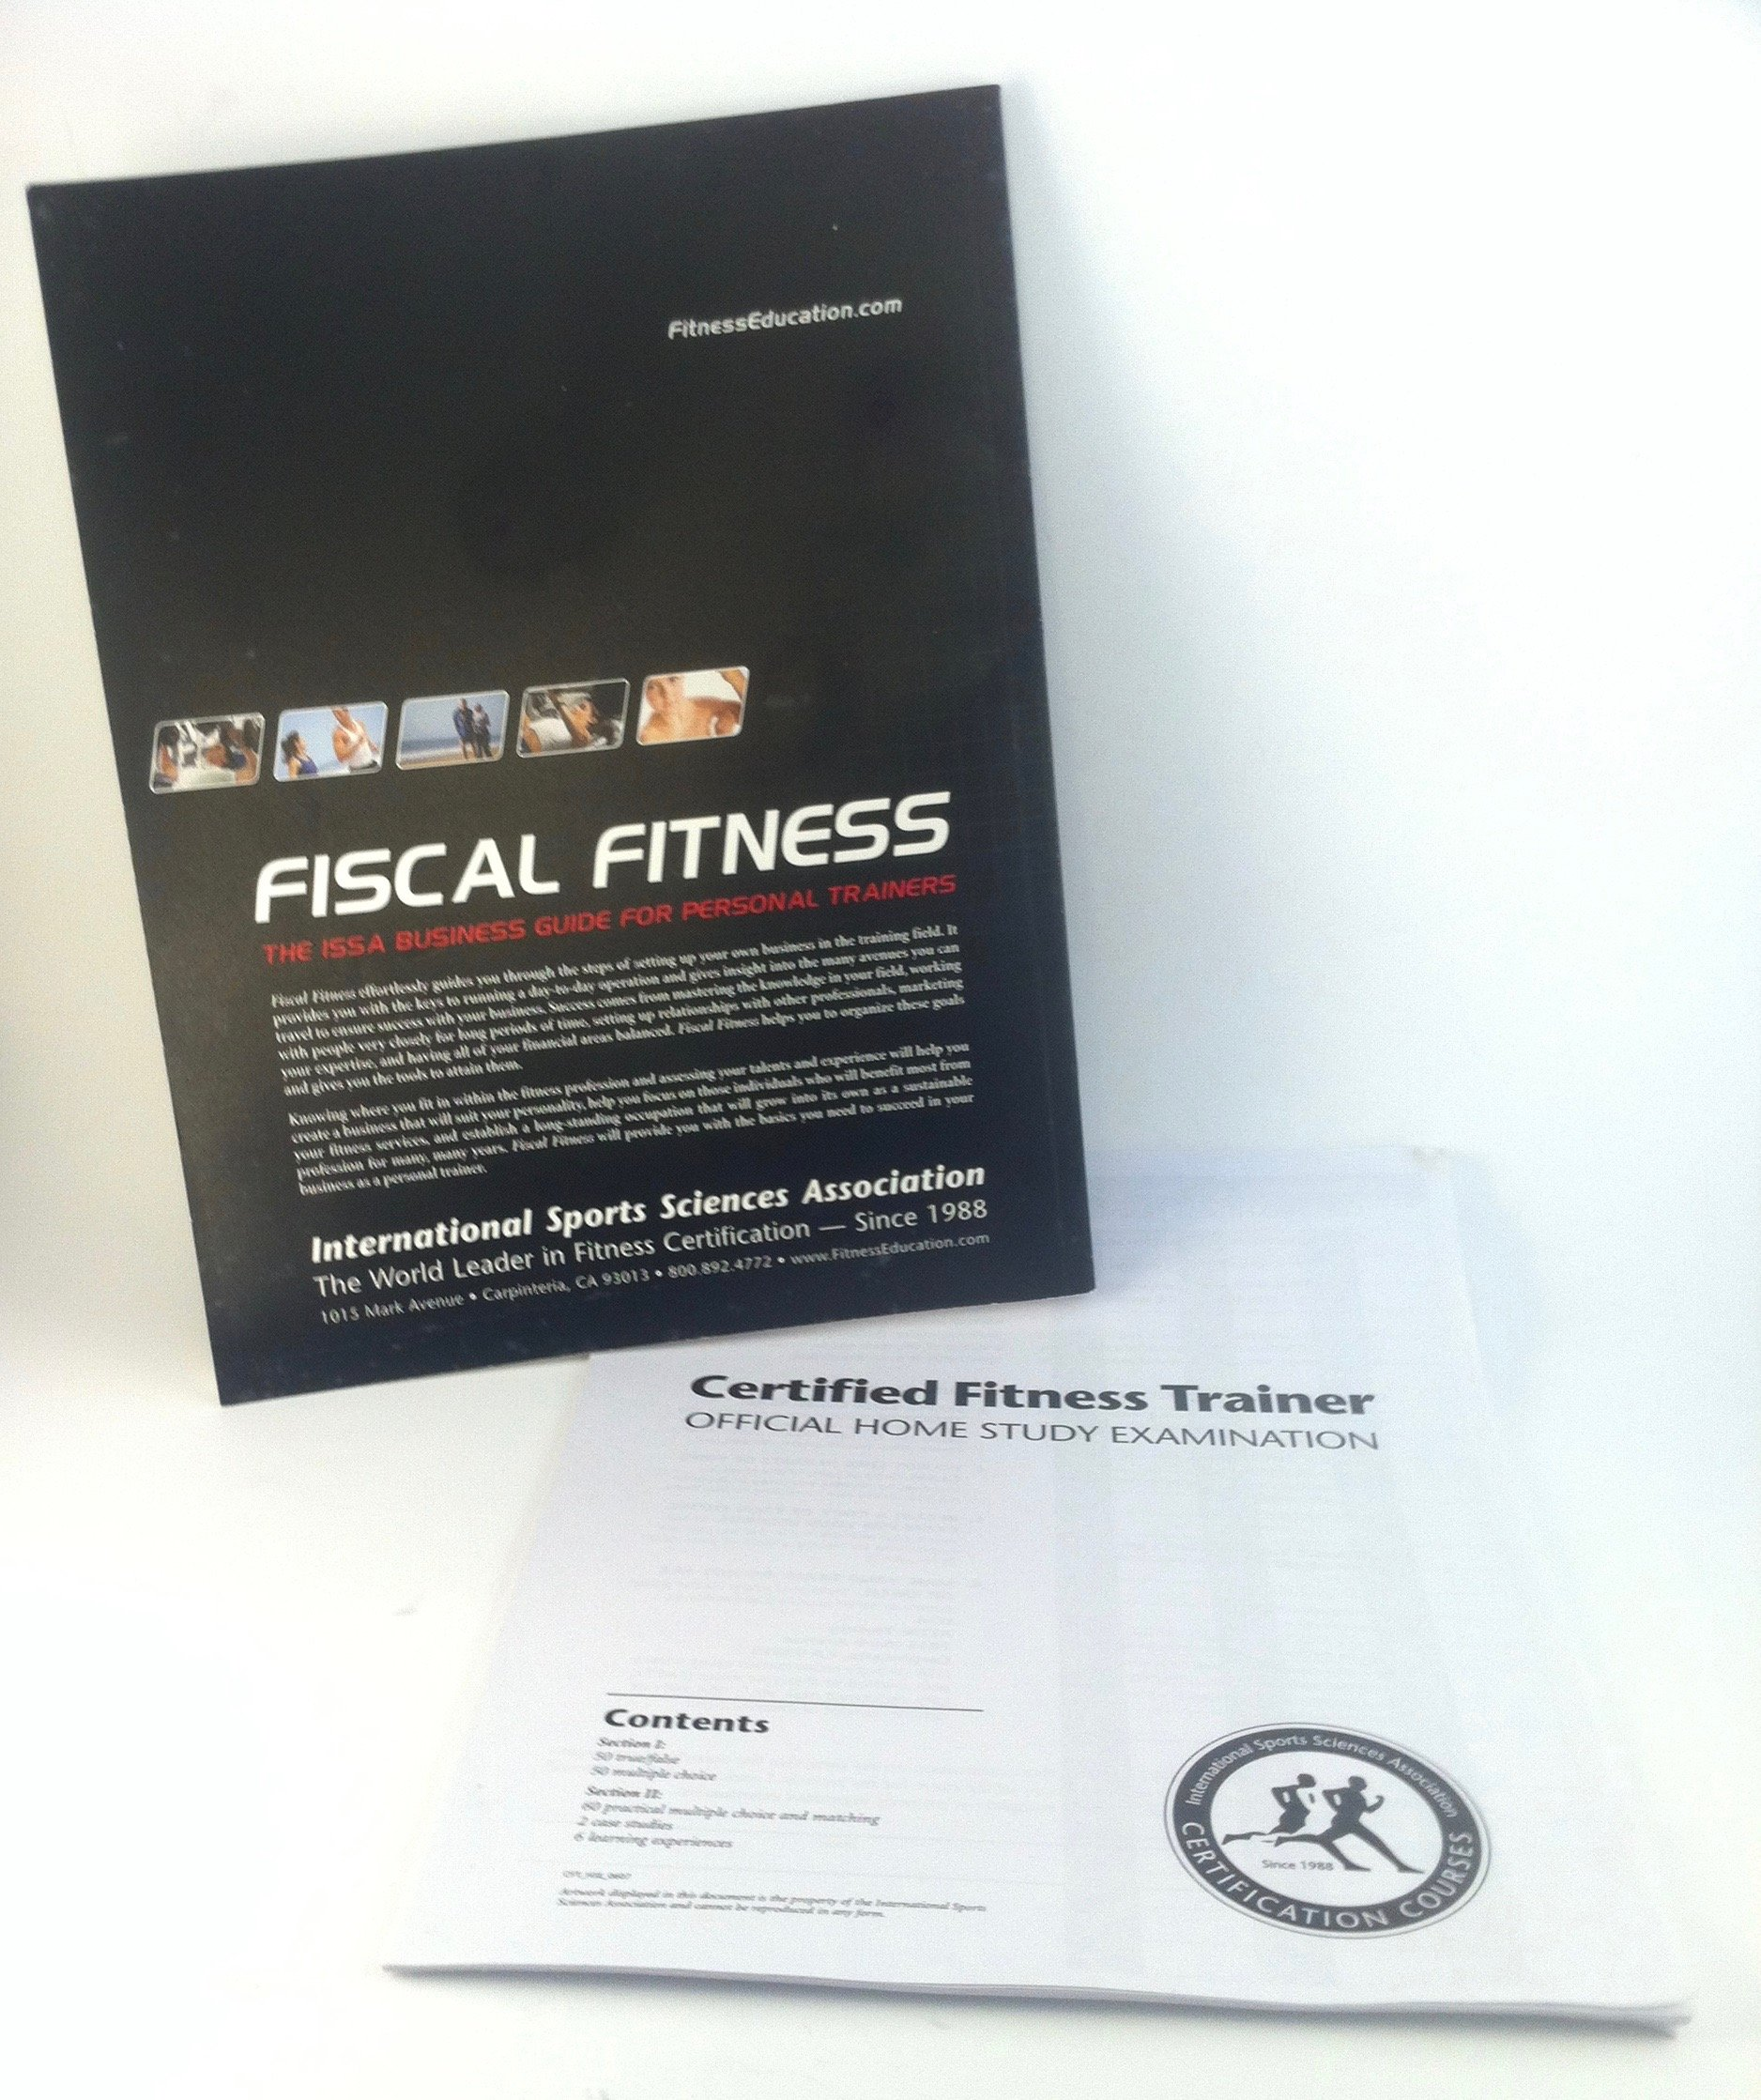 Fiscal Fitness The Issa Business Guide For Personal Trainers